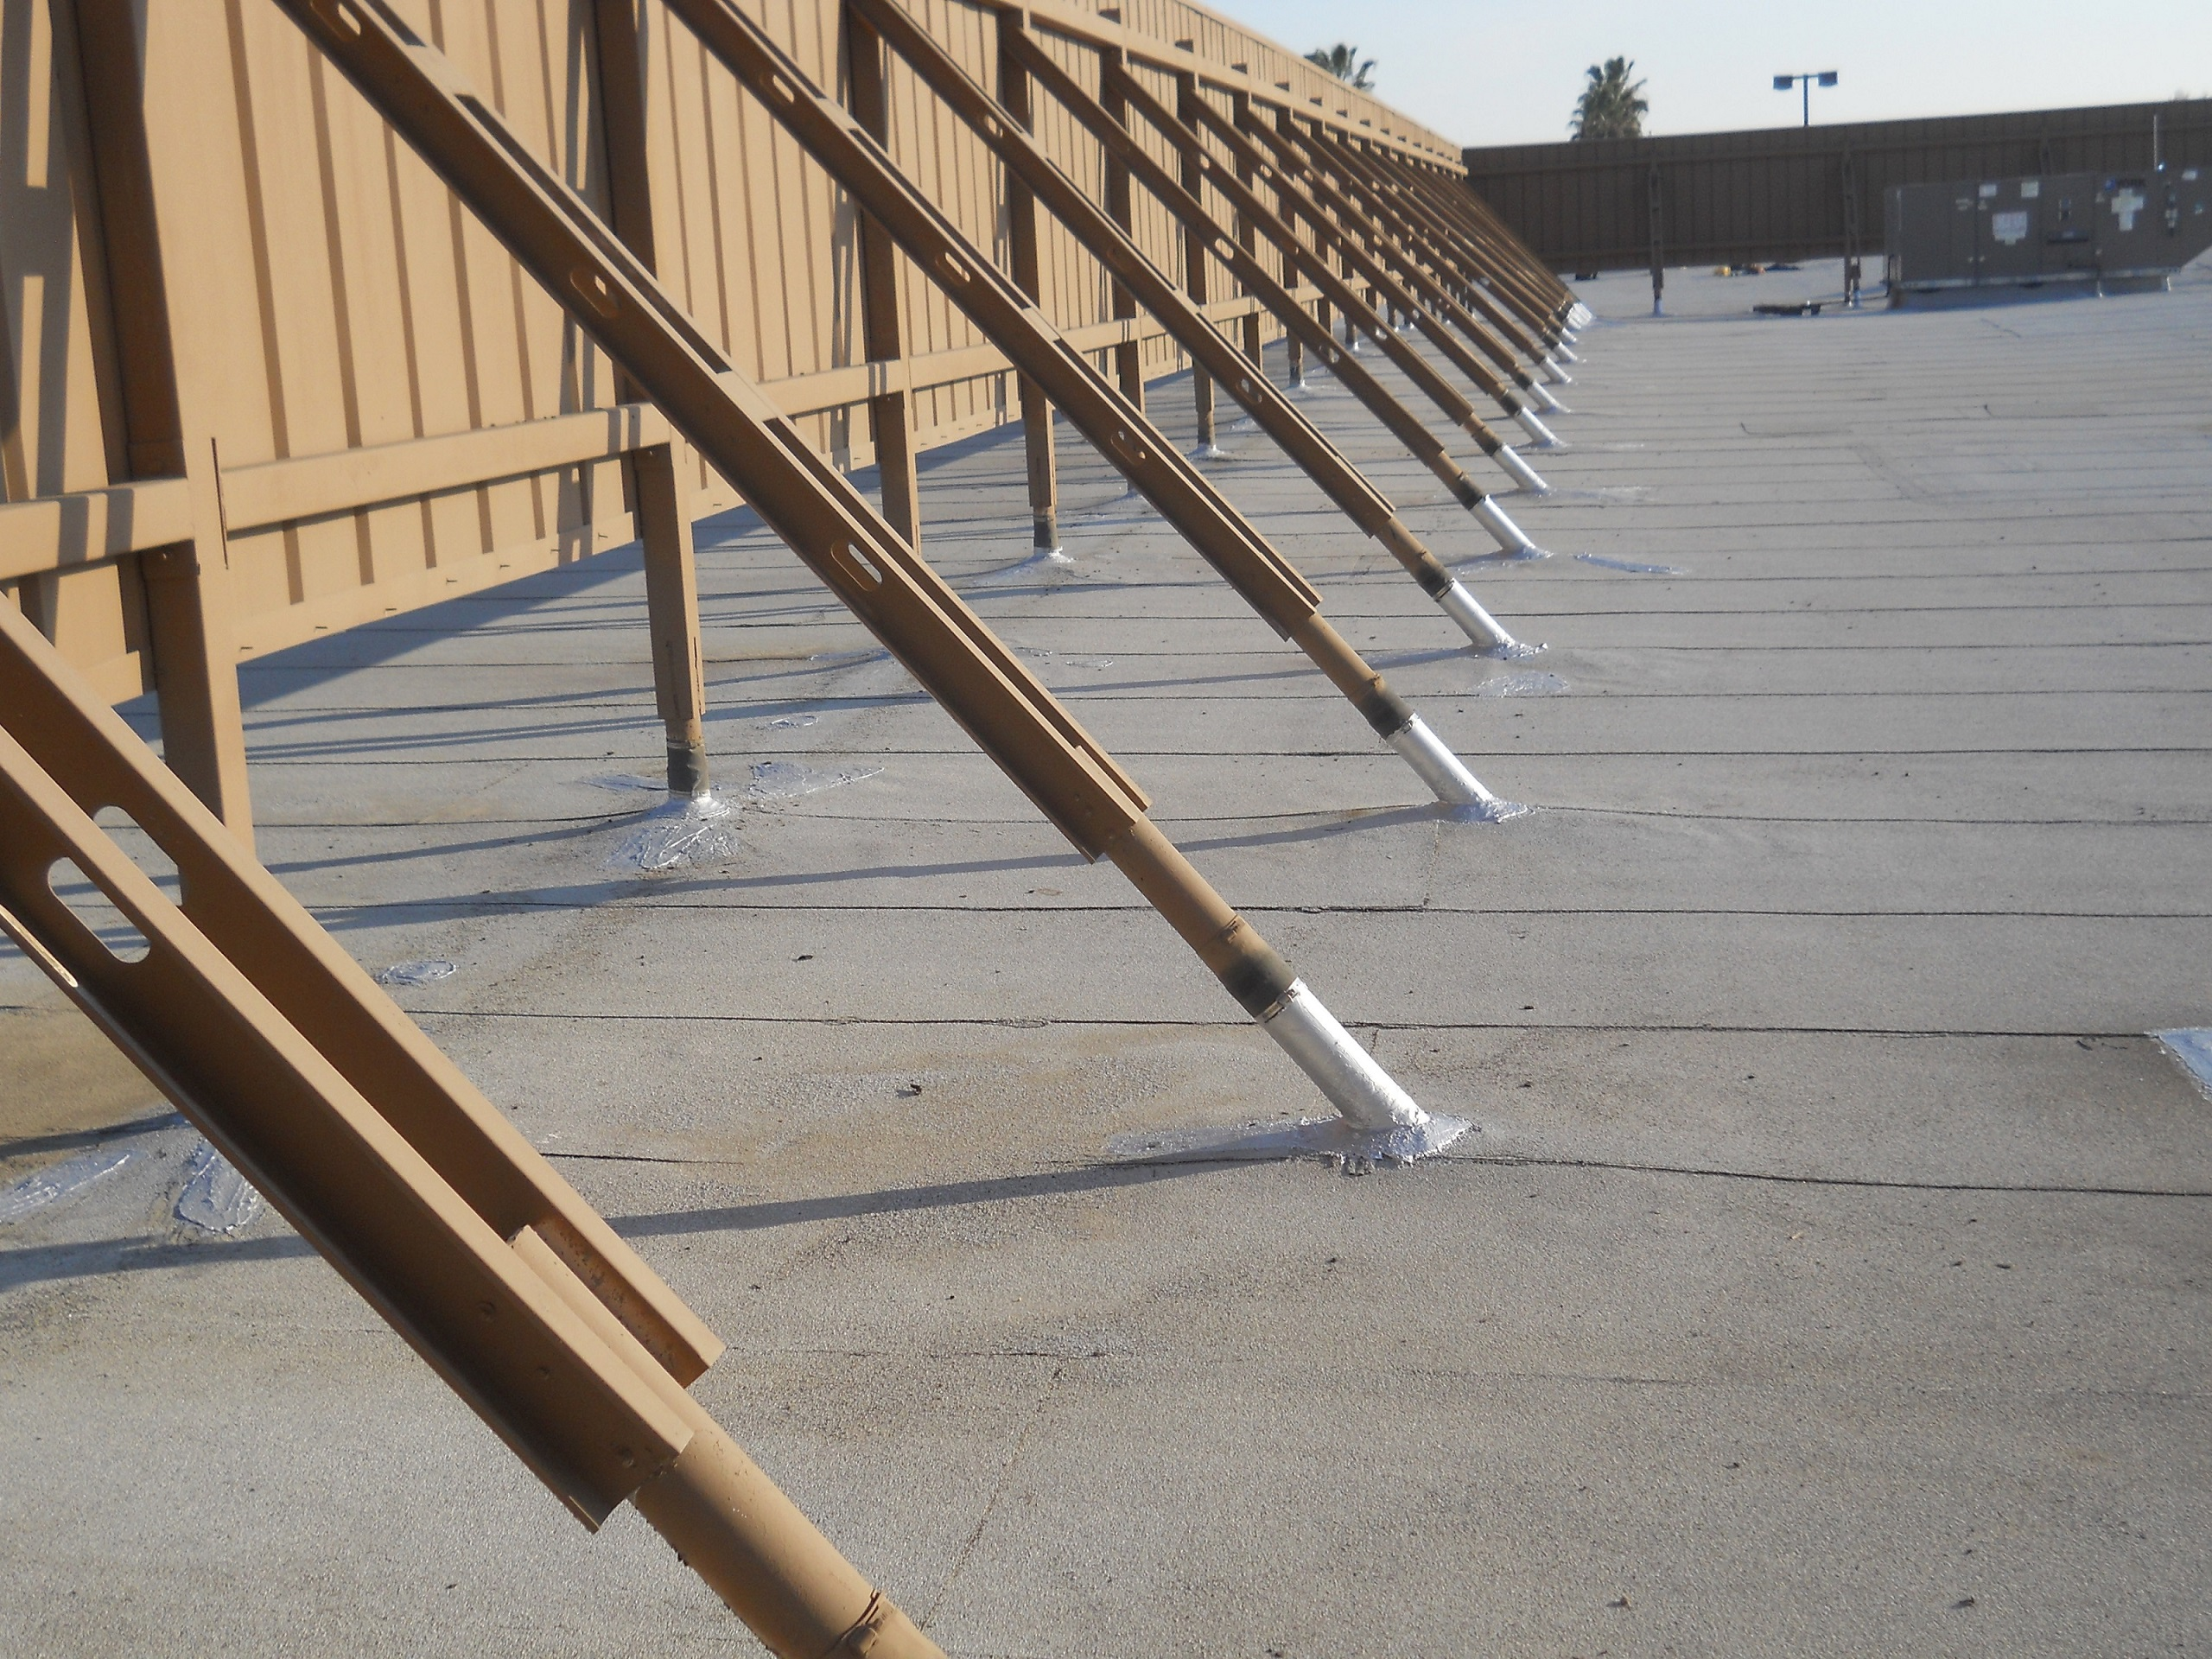 Properly maintained commercial roofing